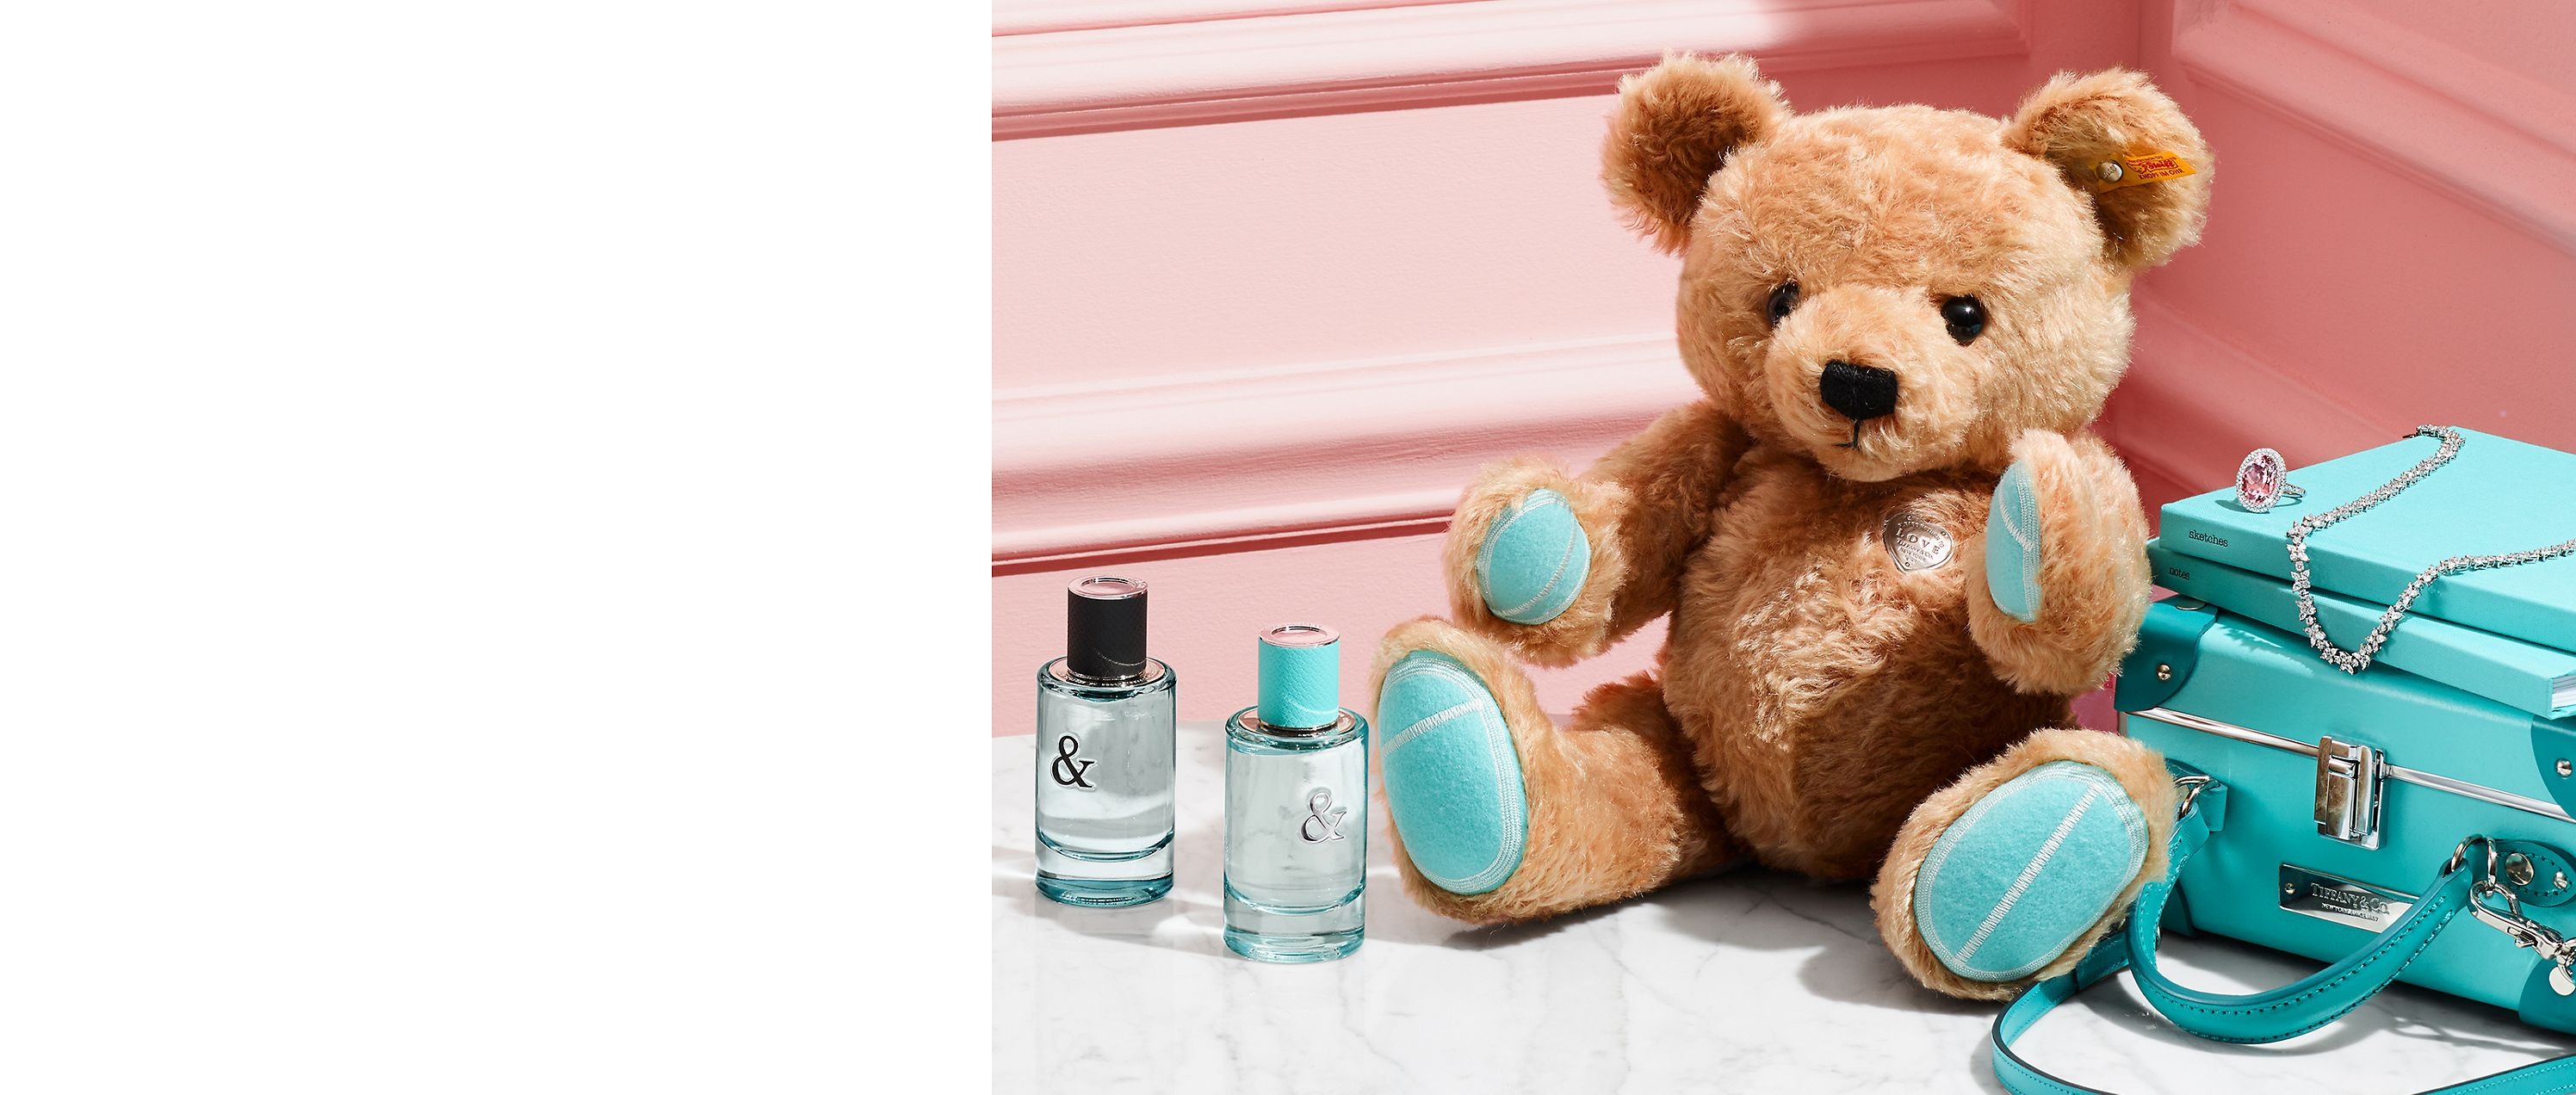 Tiffany & Co. Gifts for the Home